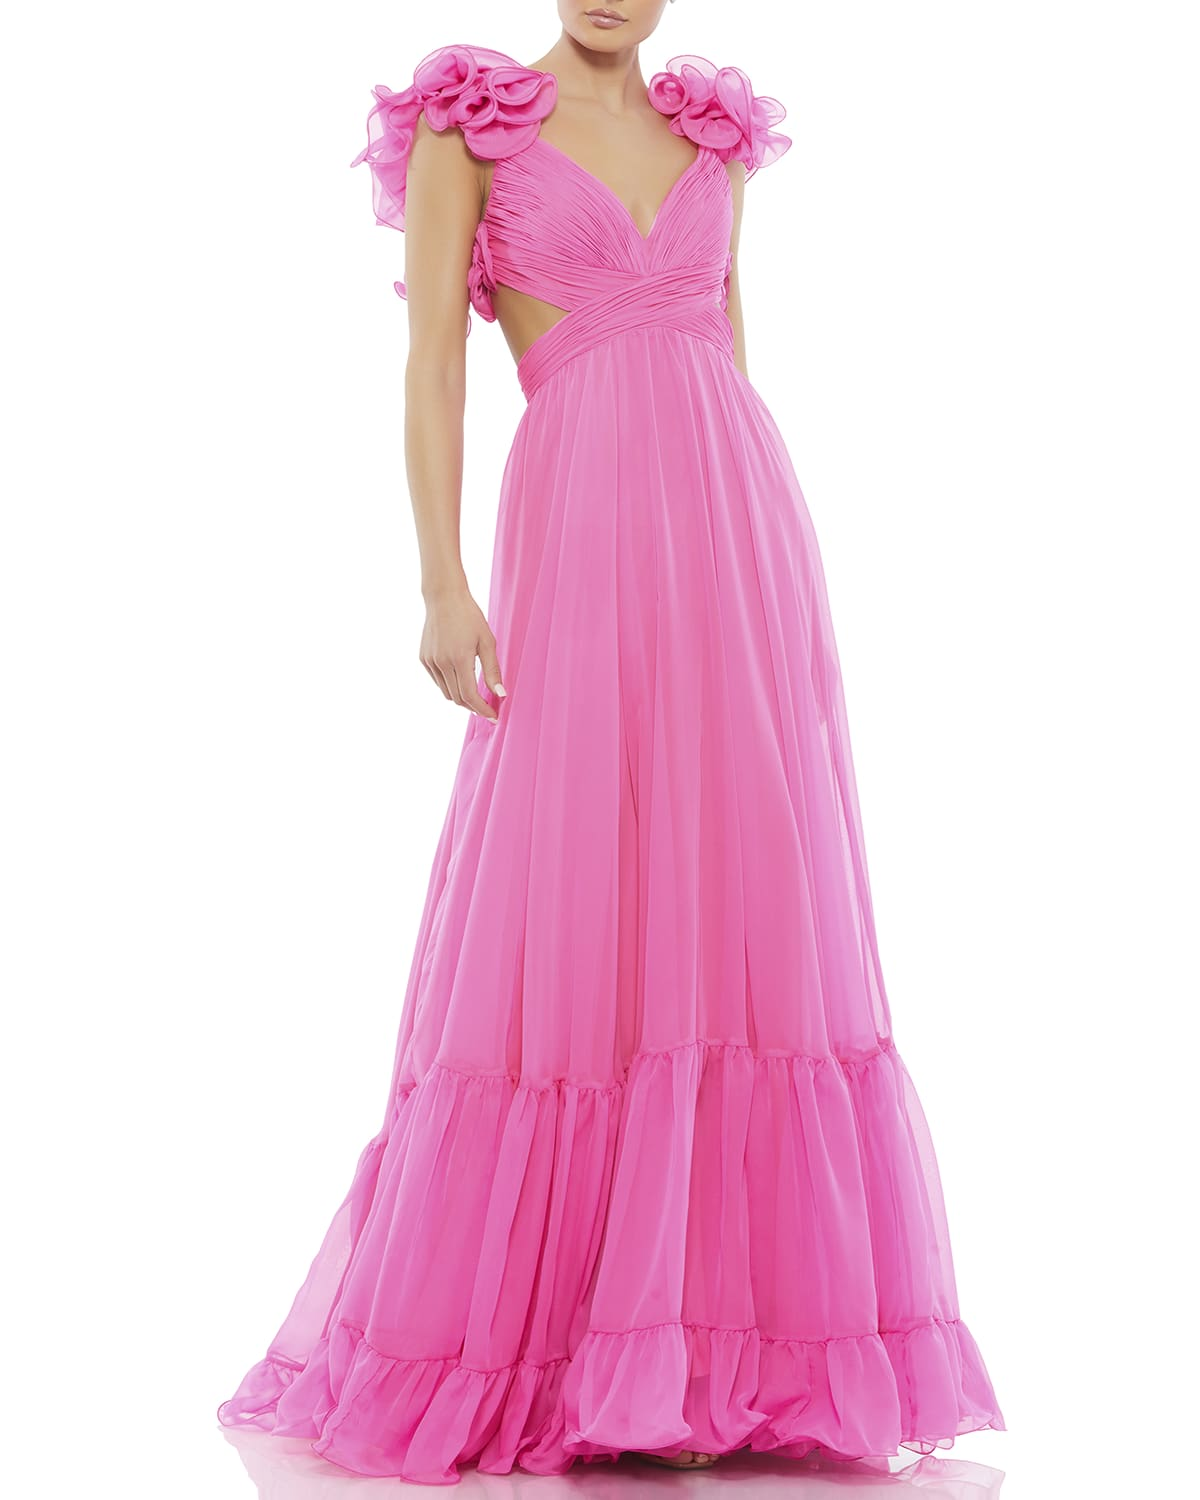 Cutout Ruffle Tulle Lace-Up Gown